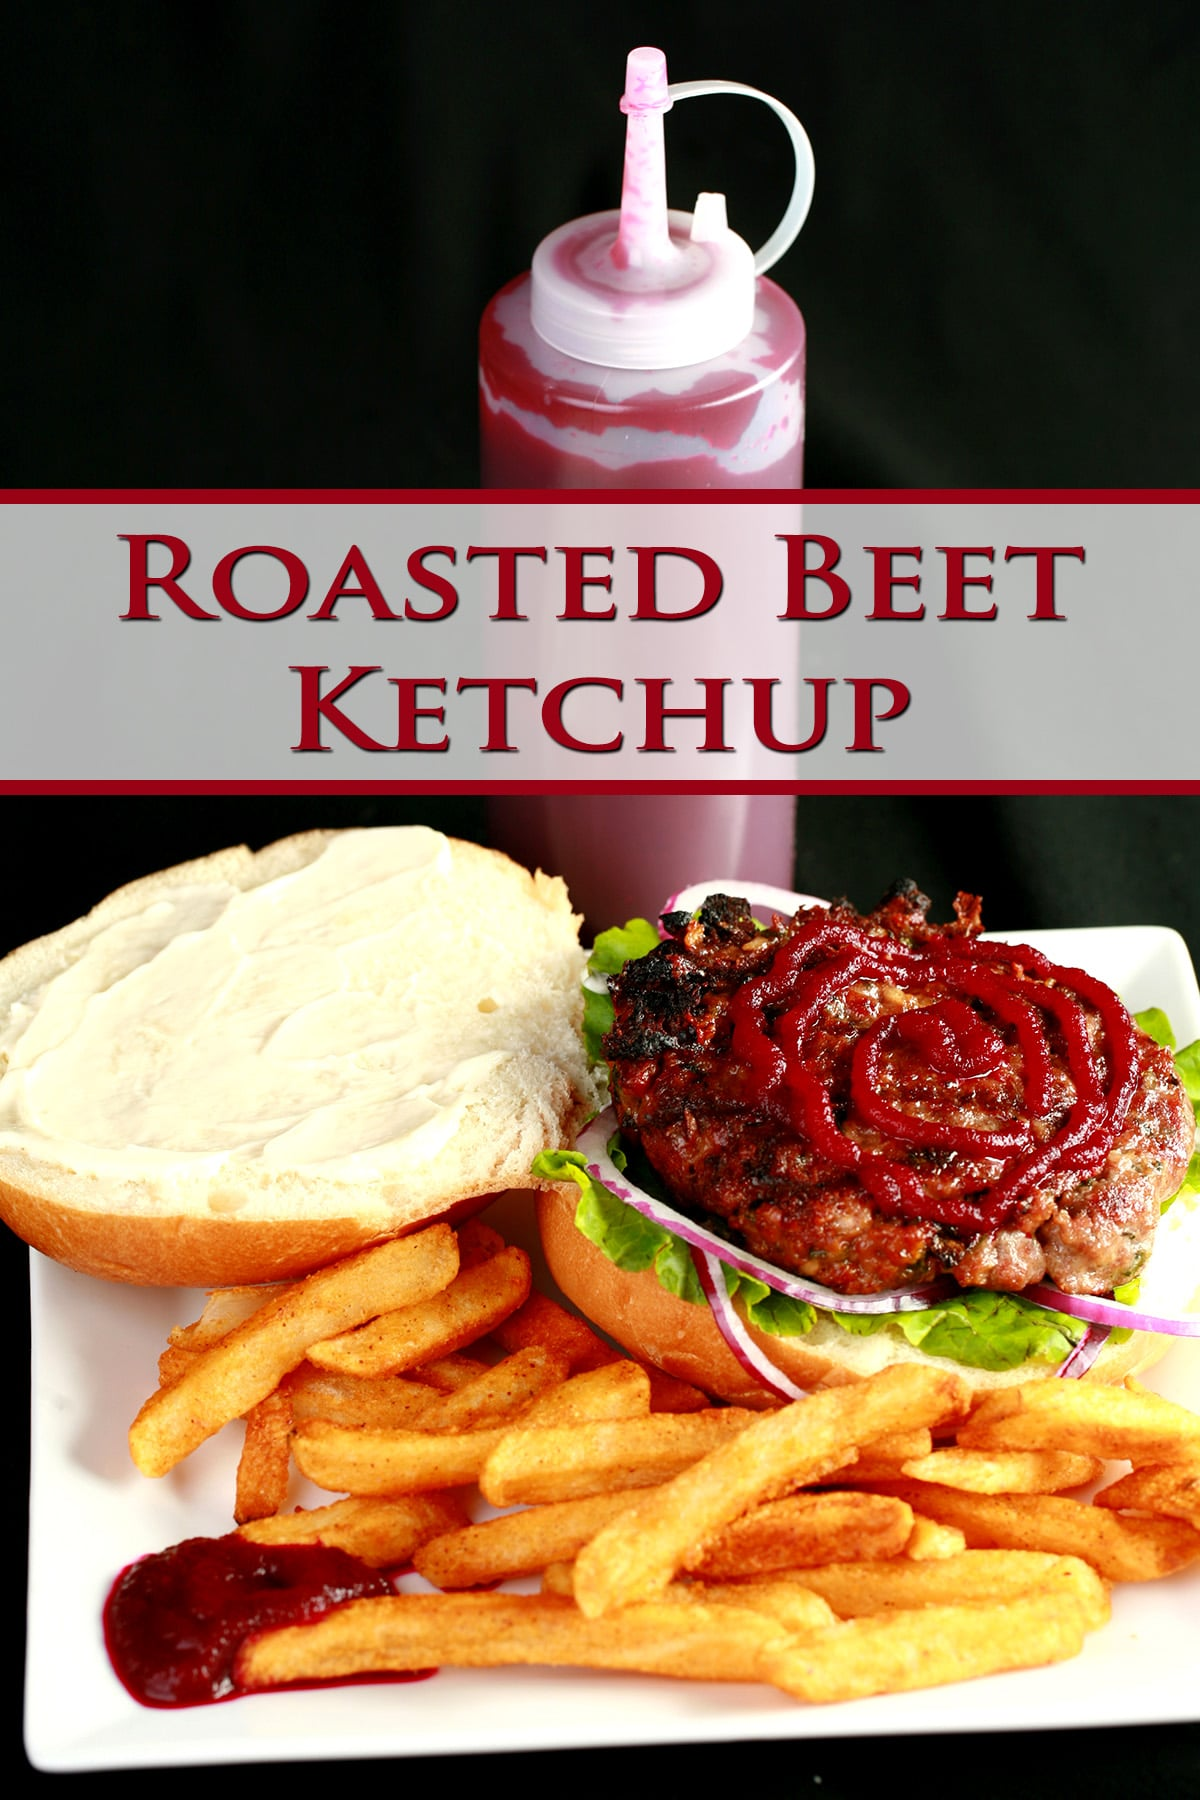 An open faced burger on a plate with fries. The burger has a large ruby red swirl of beet ketchup on it, and there's a bottle of the same, behind the plate.